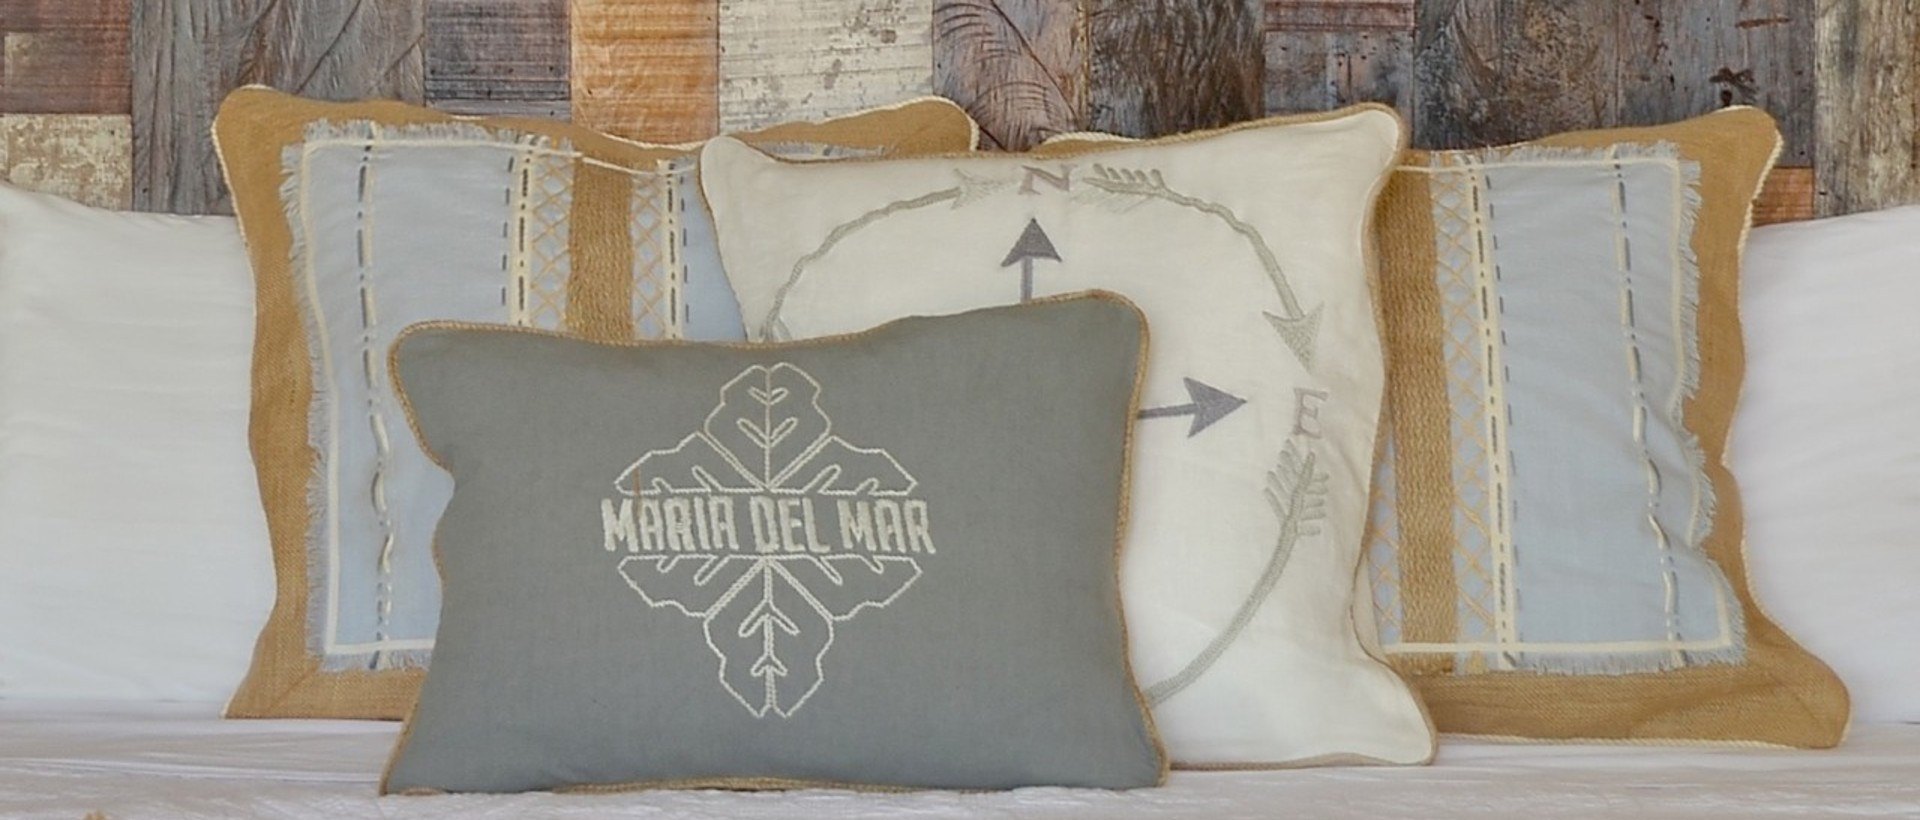 Maria del Mar Boutique Hotel